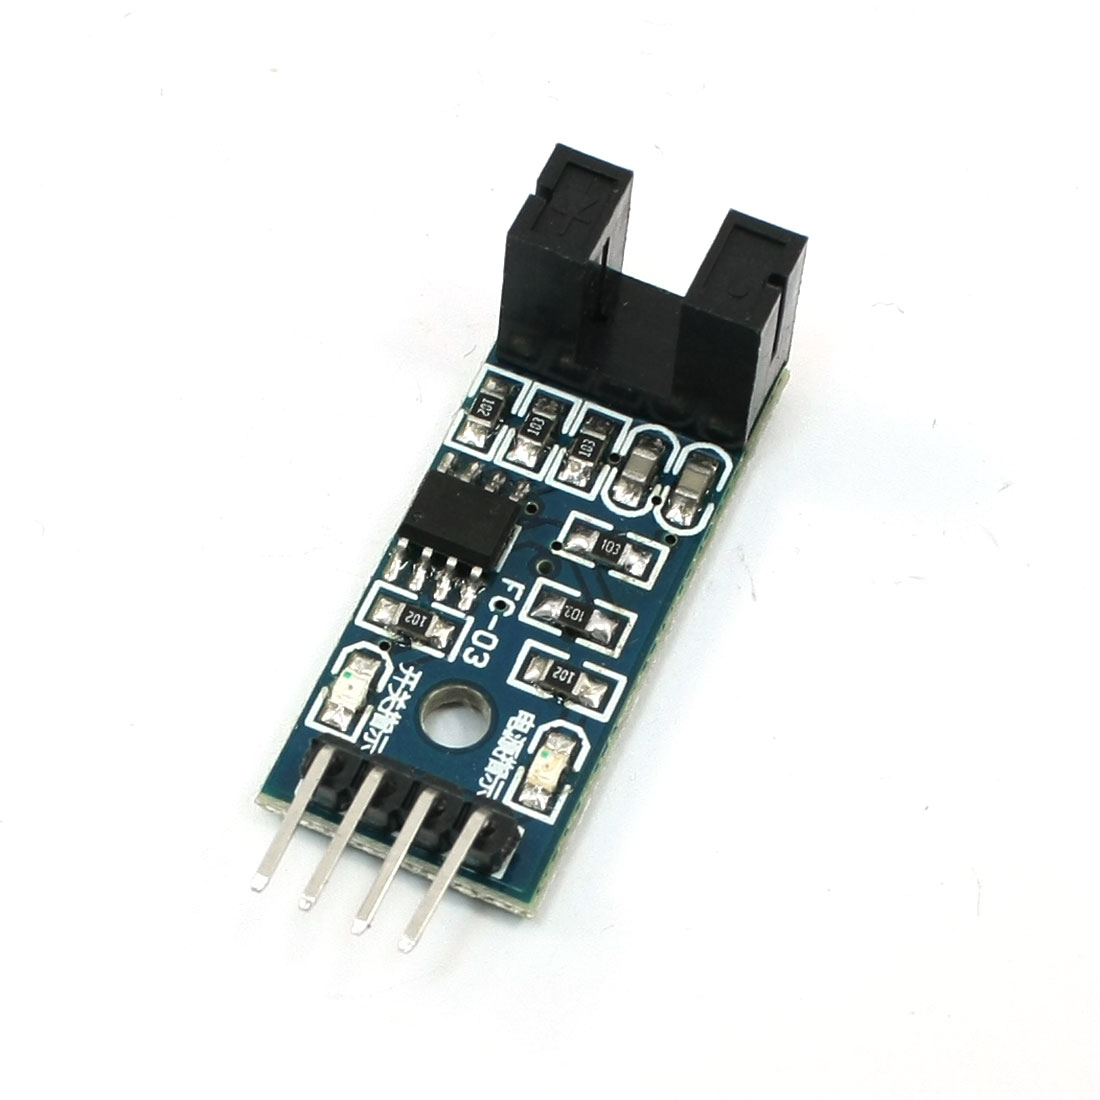 LM393 Chip Motor Measuring Comparator Speed Sensor Module for MCU